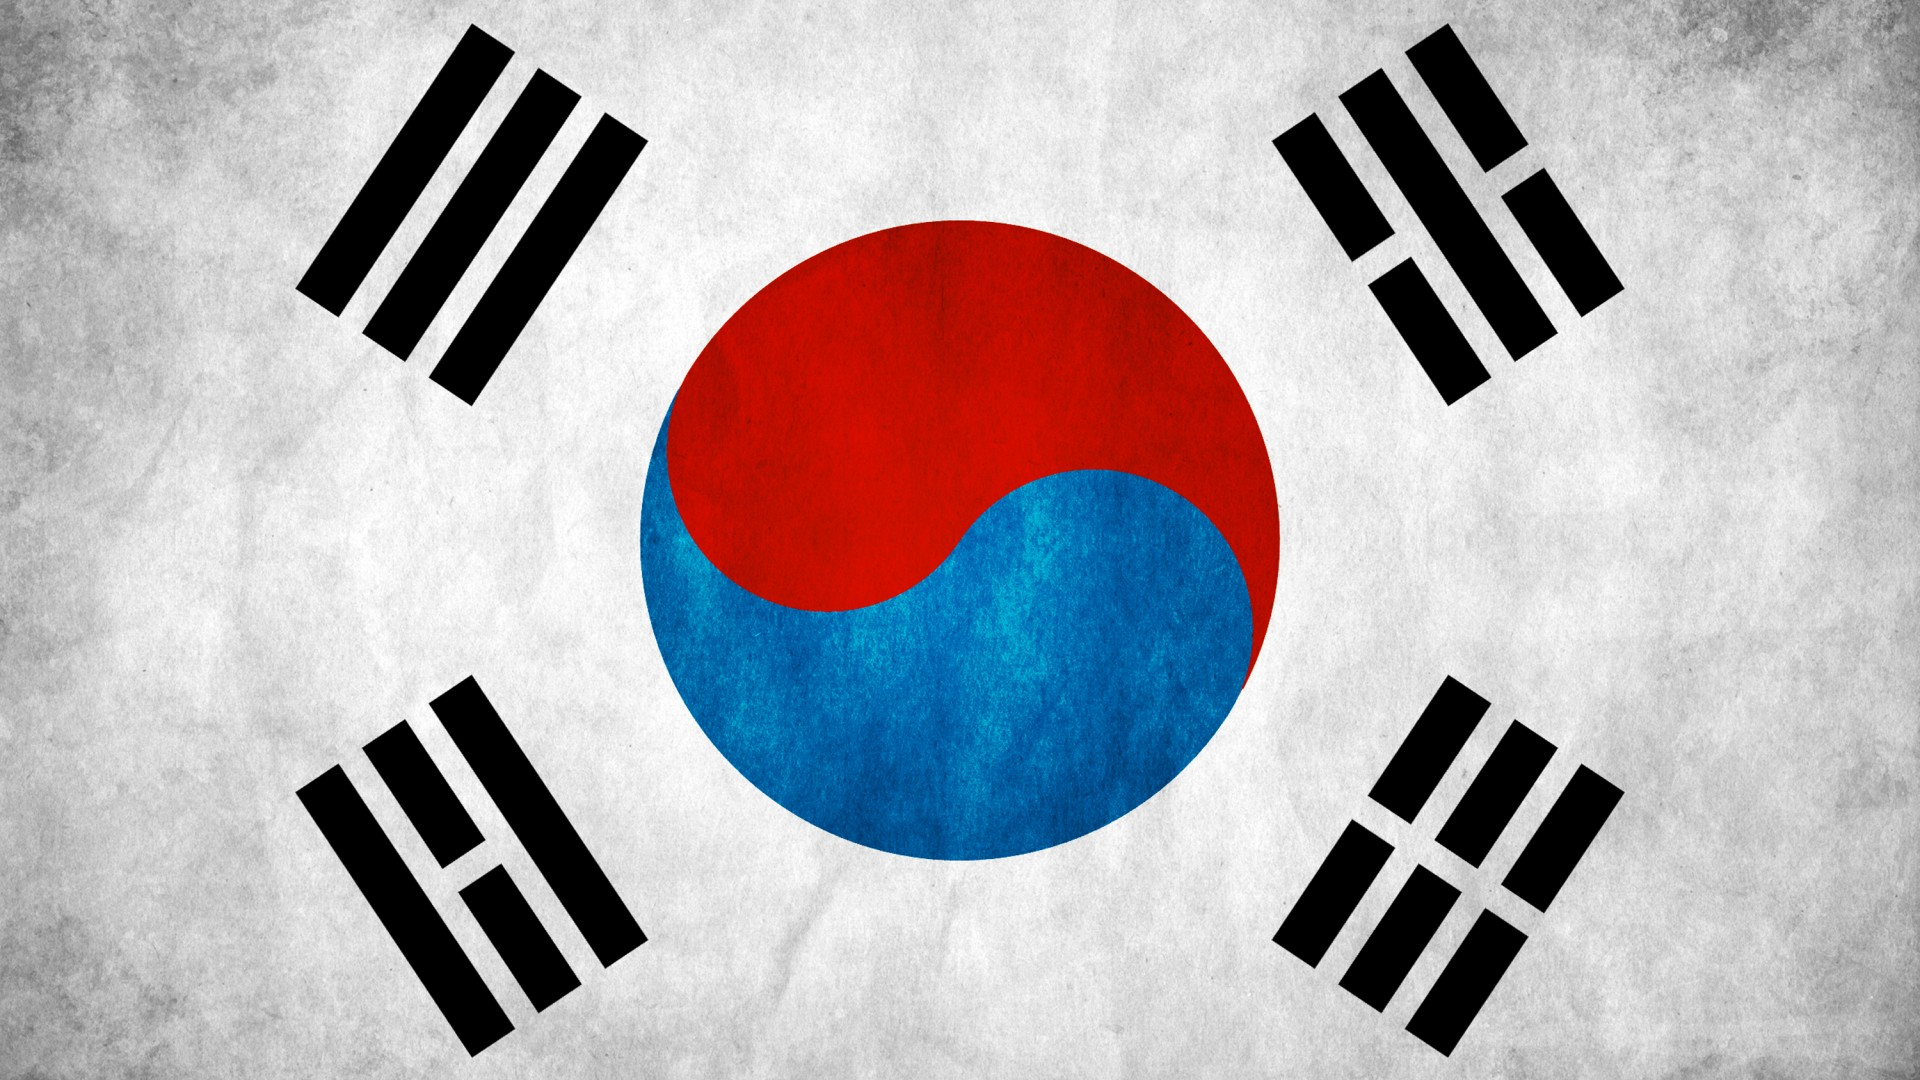 Desktop Korea Flag Wallpaper and make this wallpaper for your desktop 1920x1080